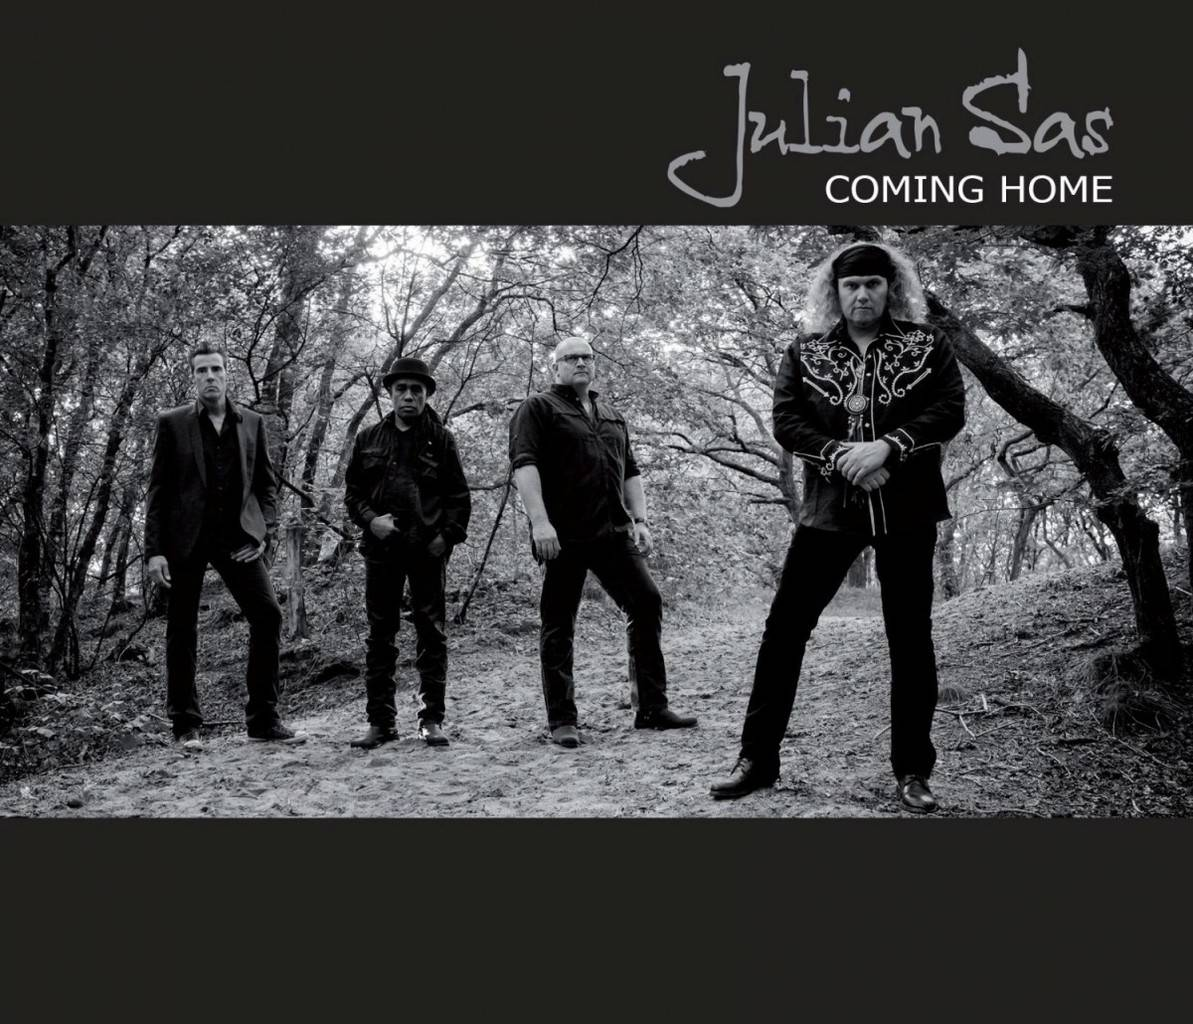 julian sas coming home